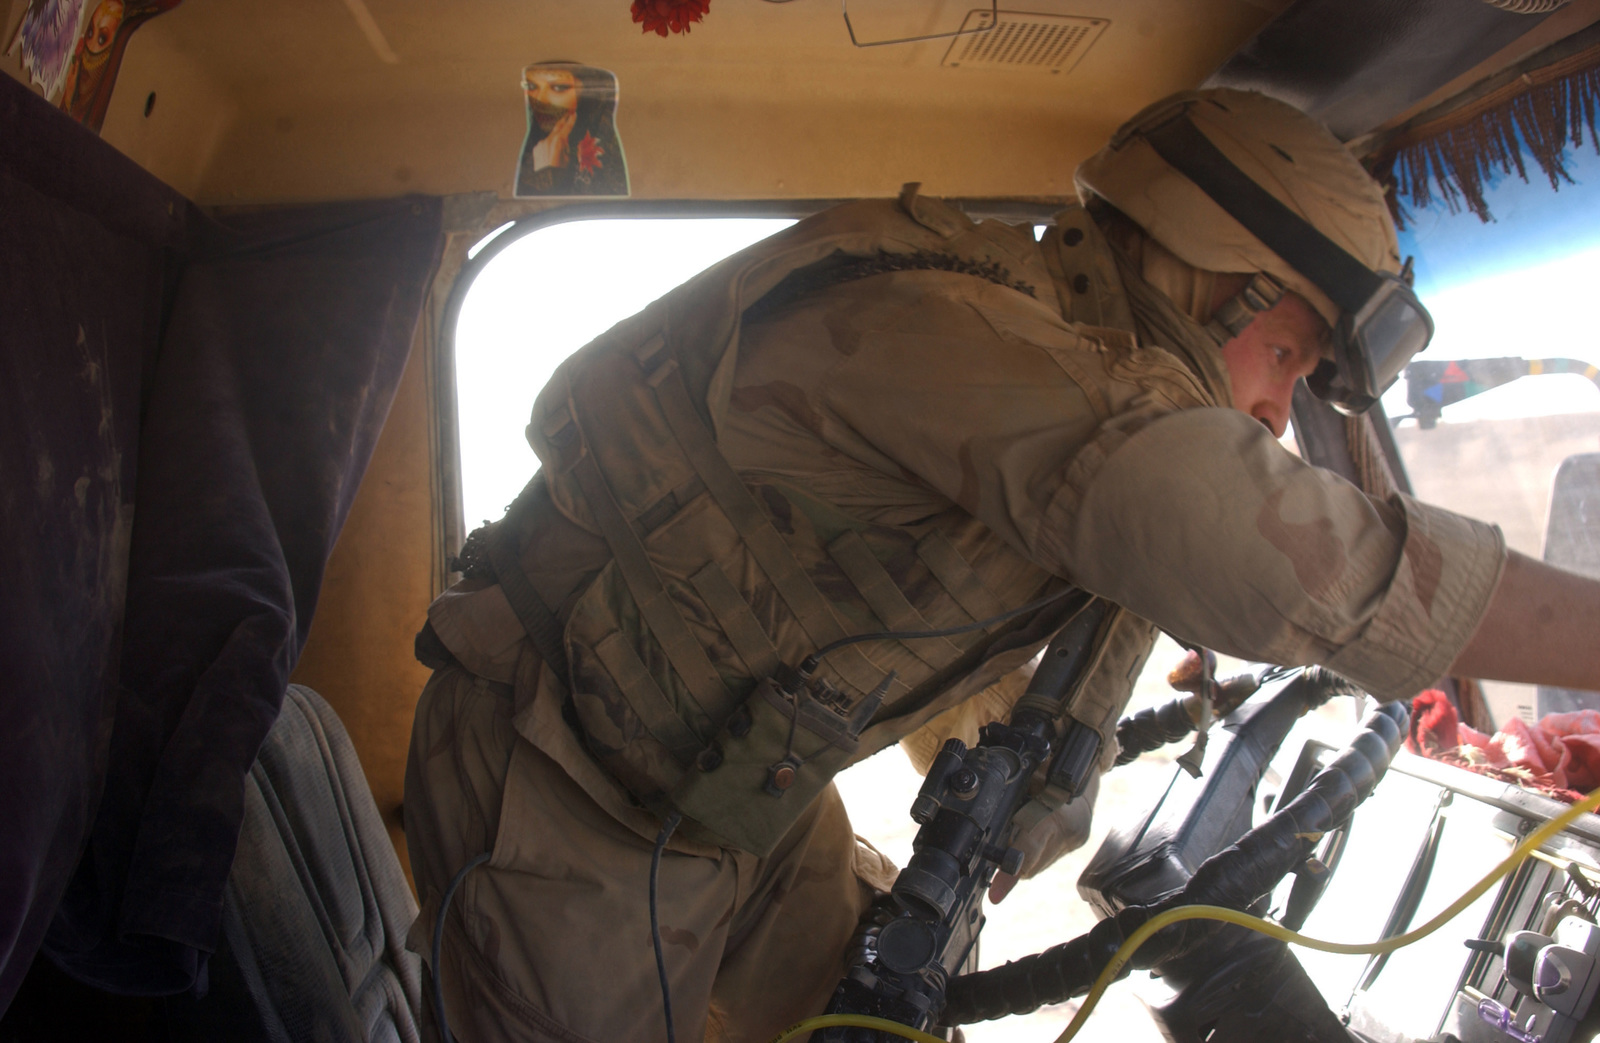 U.S. Army STAFF SGT. John Blair, with 2nd Squadron, 14th Cavalry (2-14), searches a vehicle for weapons or other contraband during a patrol near the Syrian border on Aug. 10, 2005.  2-14, operating out of Combat Outpost Rawah, is currently in the area to suppress terrorists from crossing the Syrian border into Iraq.  (U.S. Army photo by STAFF SGT. Kyle Davis)  (Released)